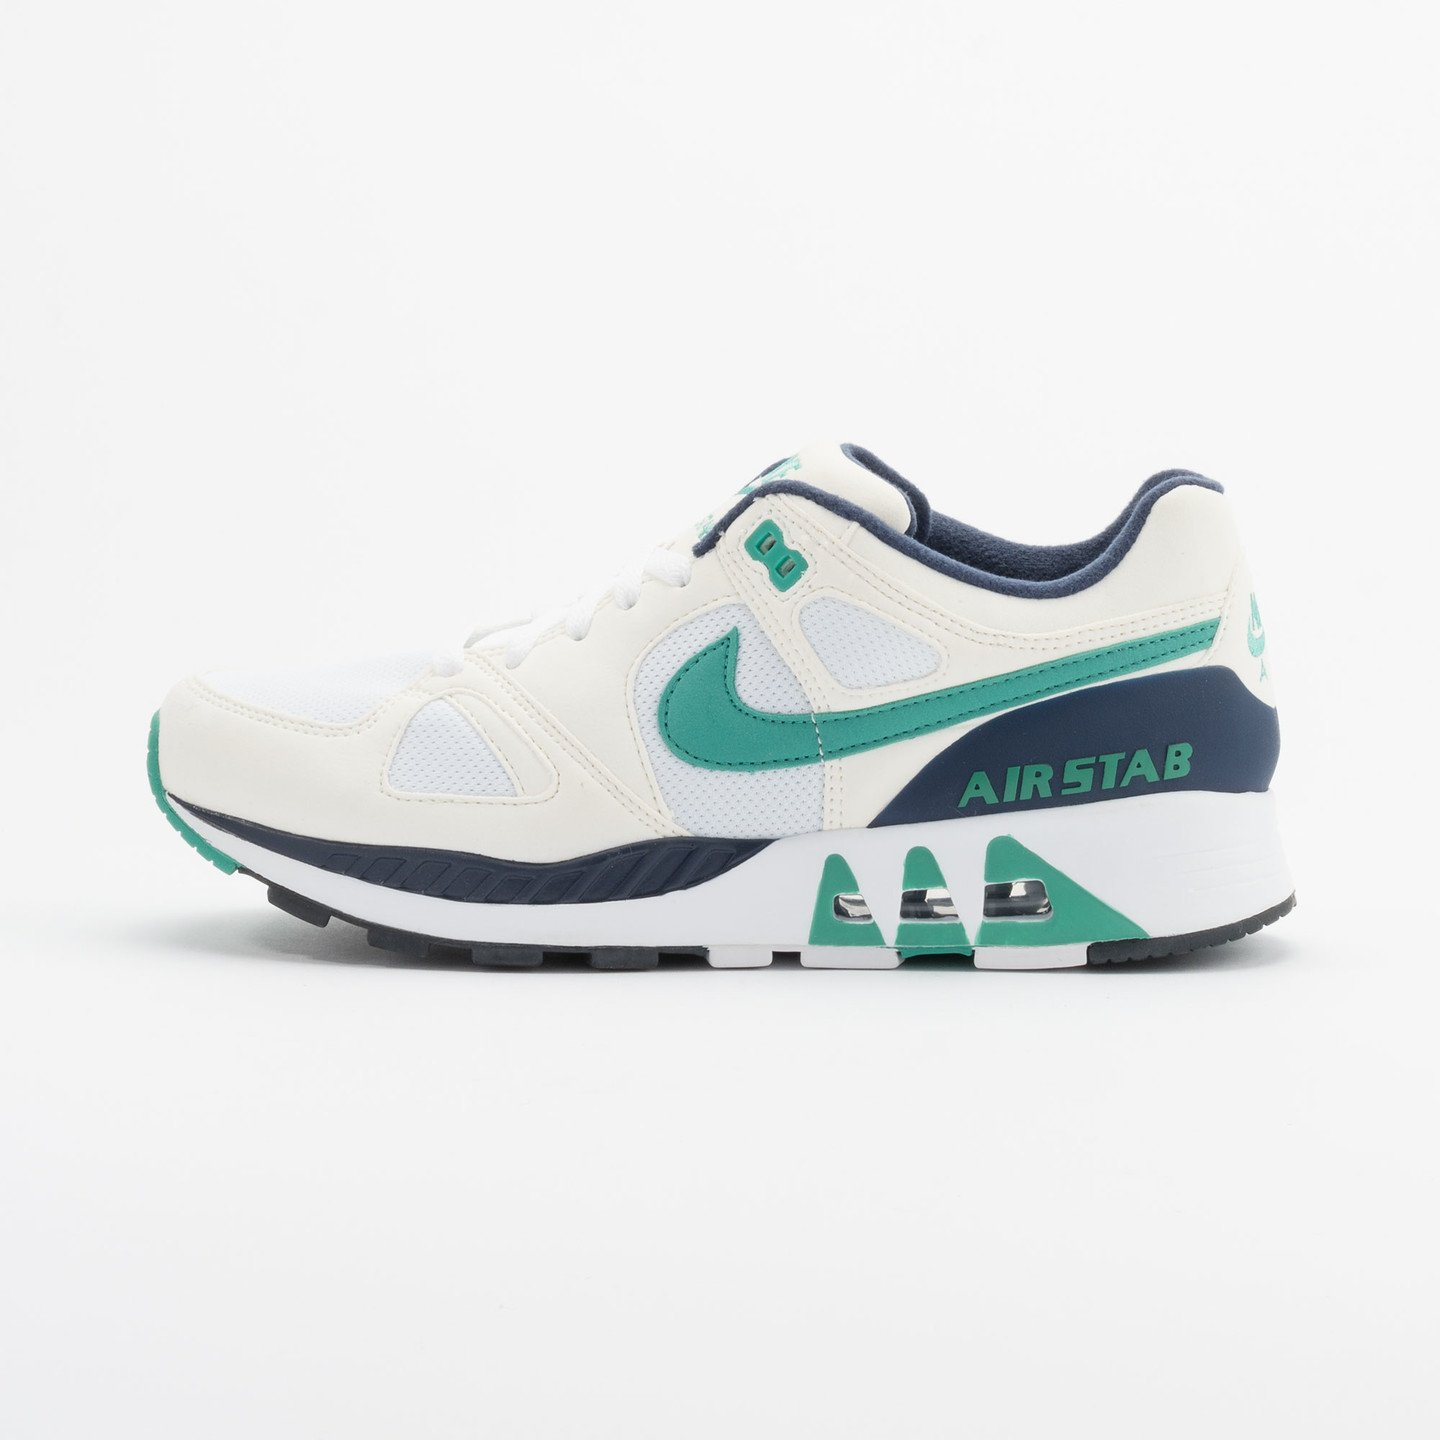 Nike Air Stab White/Emerald Green-Sl-Mid Nvy 312451-100-45